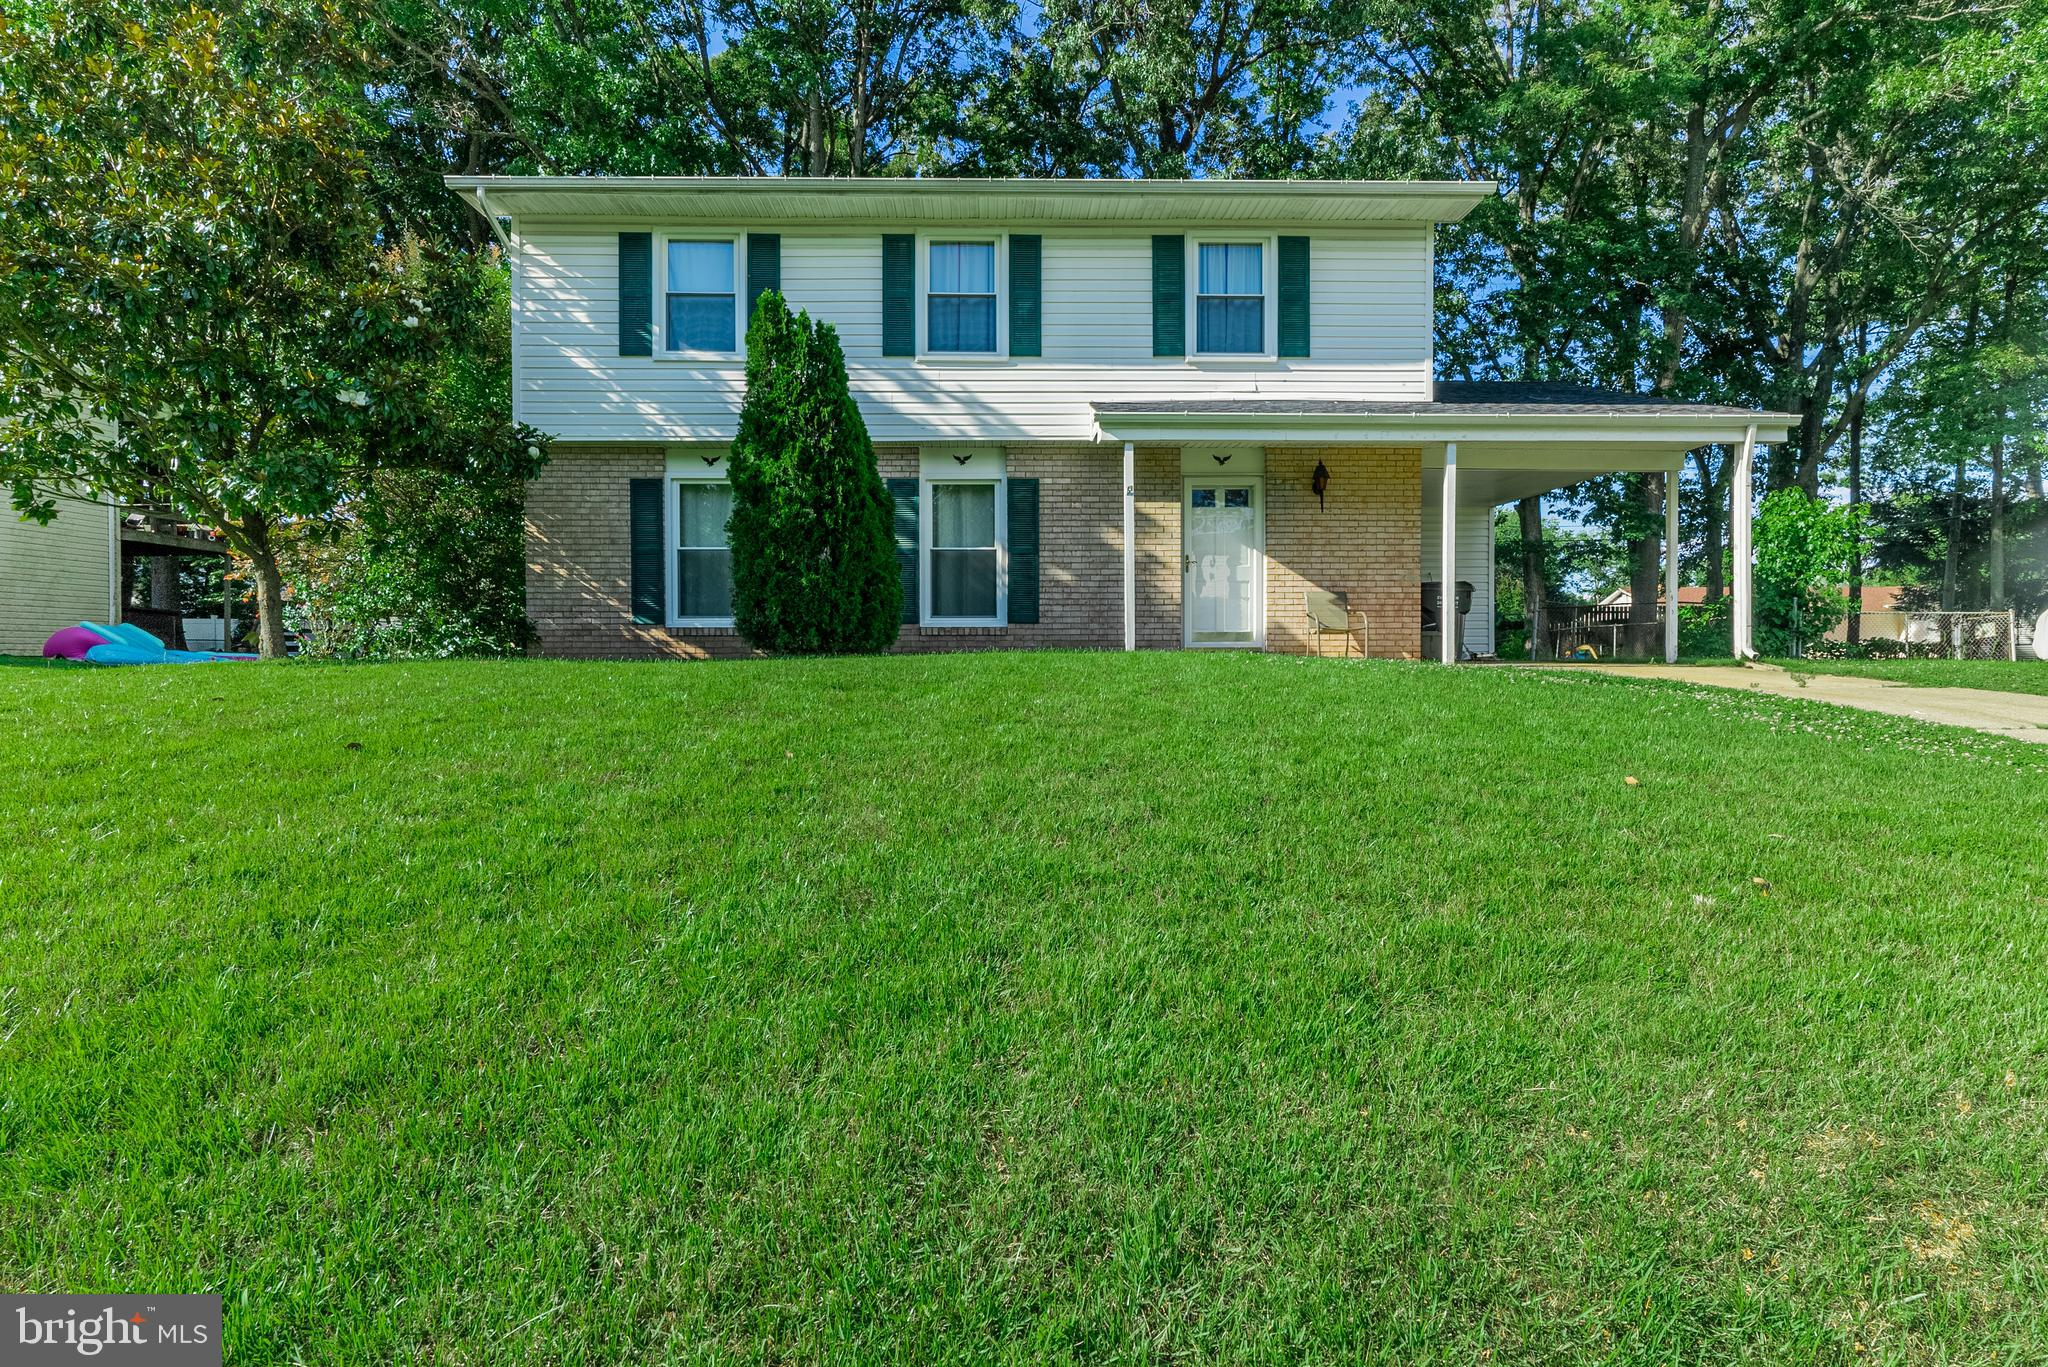 Welcome Home! Lovely 4BD/2.5BA home. Nicely renovated kitchen with a large eat in area with access to the family room and living room areas for entertaining.  Master Suite with two closets. Fenced backyard with a covered patio, play set, and shed. Offers due on Sunday 6/20 at 2 pm.